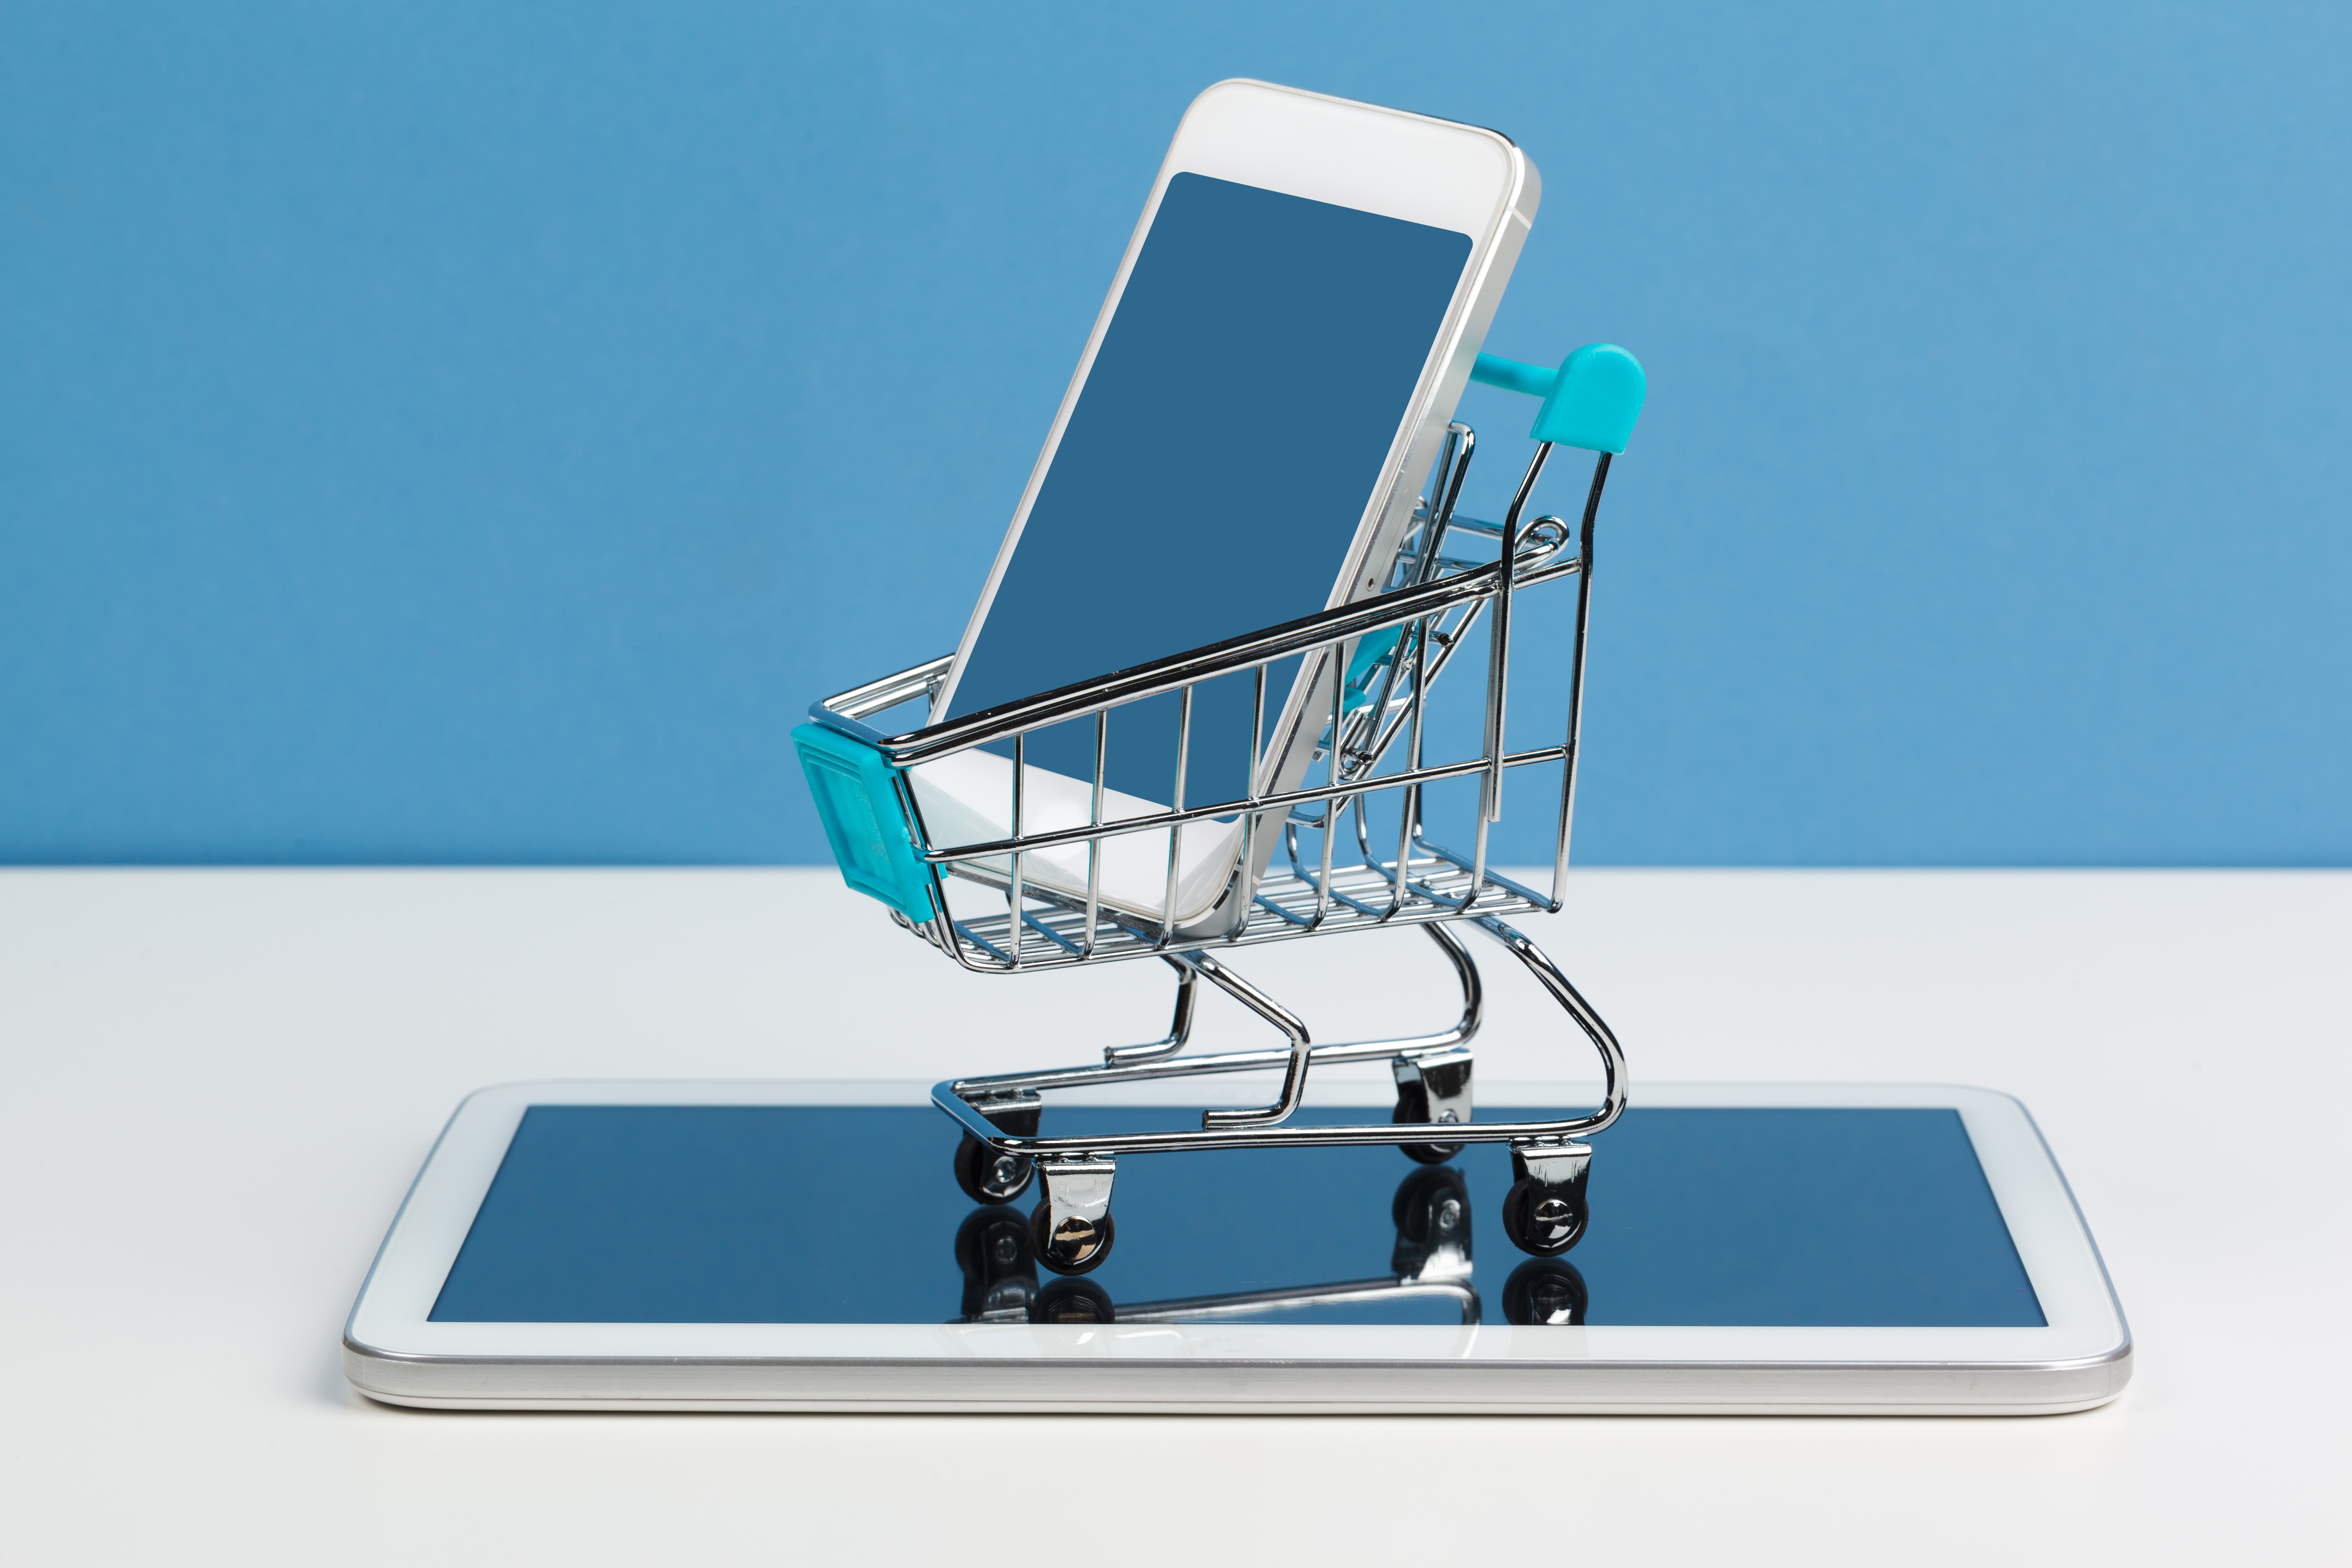 The Consequence of Mobile Convenience